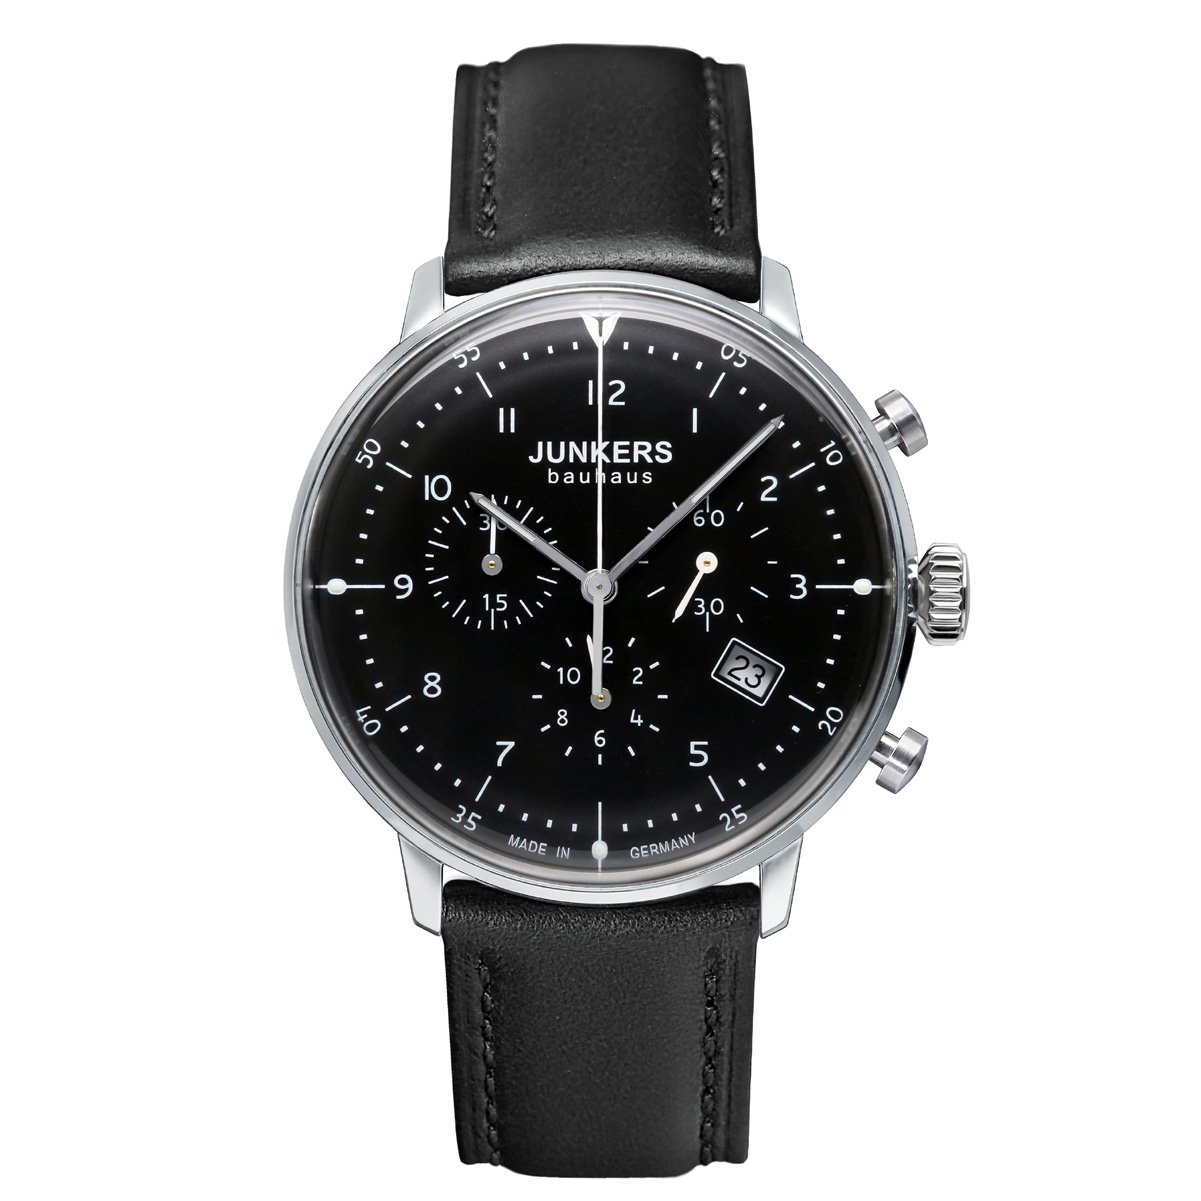 Junkers Men's Chronograph Quartz Watch with Leather Strap – 60862- Buy  Online in Cook Islands at cook.desertcart.com. ProductId : 48737205.